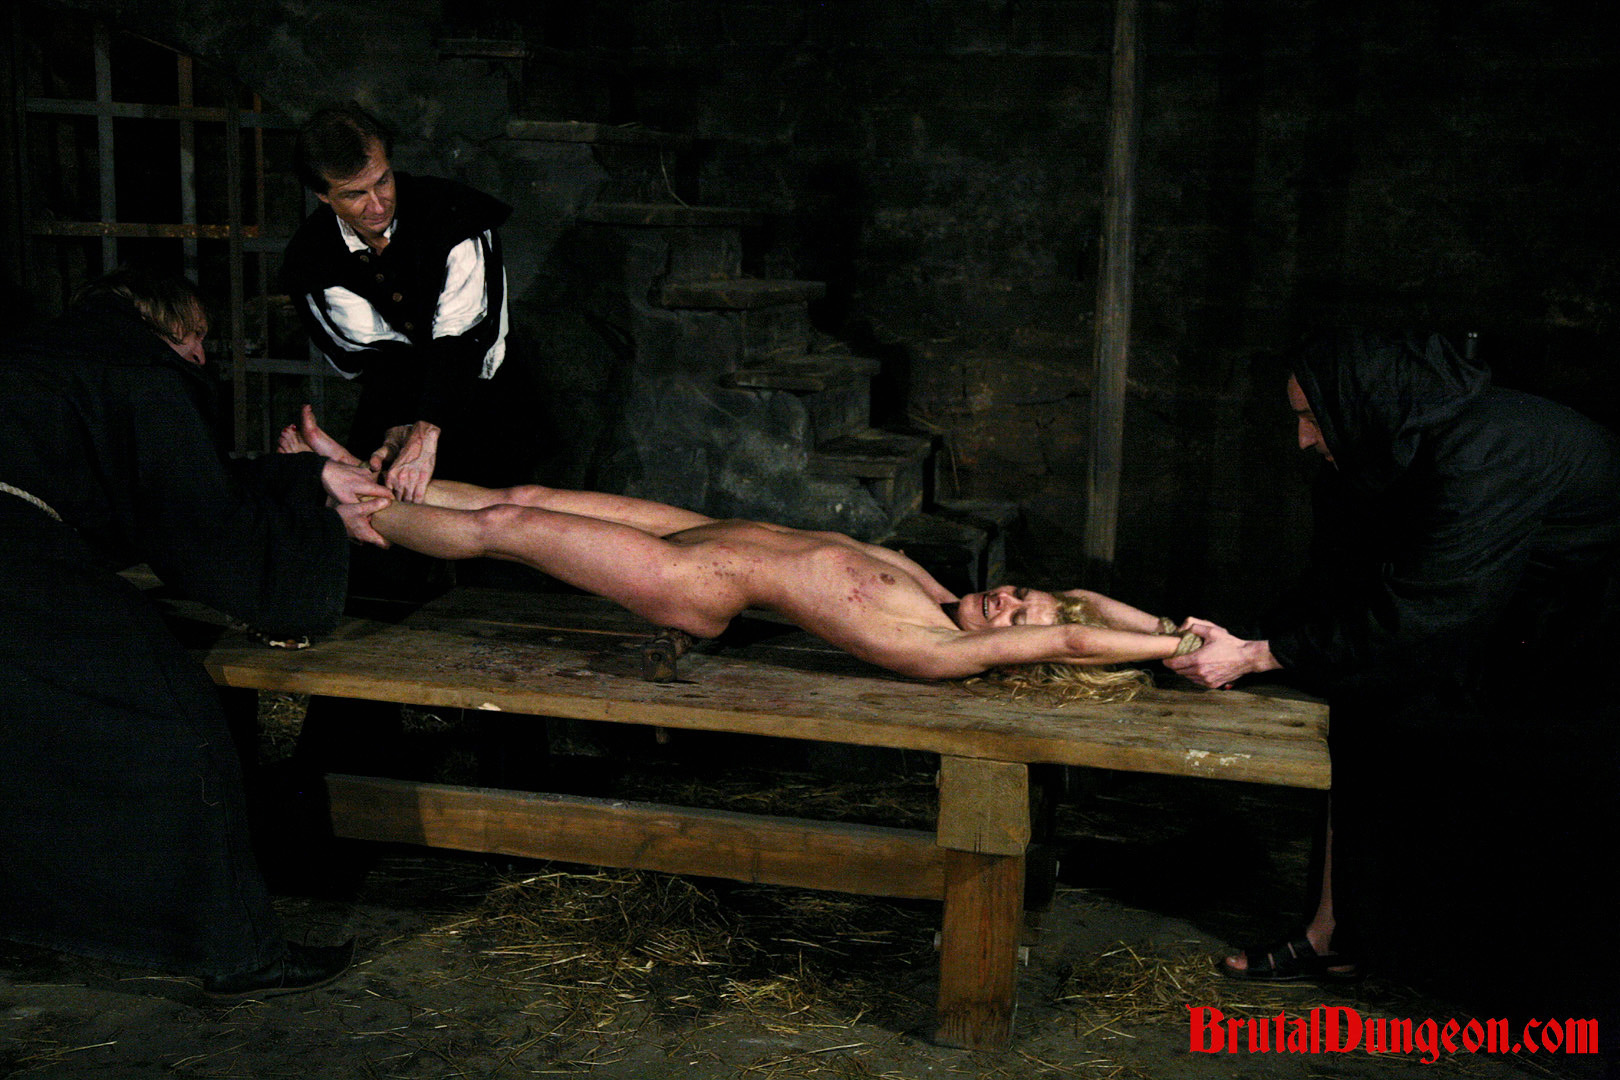 Blonde romina for bdsm gang bang. Blonde Sorceress Romina was caught conjuring spirits with her coven. Romina must endure imprisonment, BDSM gang bang, domination, bondage and suspension, spanking, slapping, fingering, breast, nipple and cunt tormented with a bondage table and spiked roller.